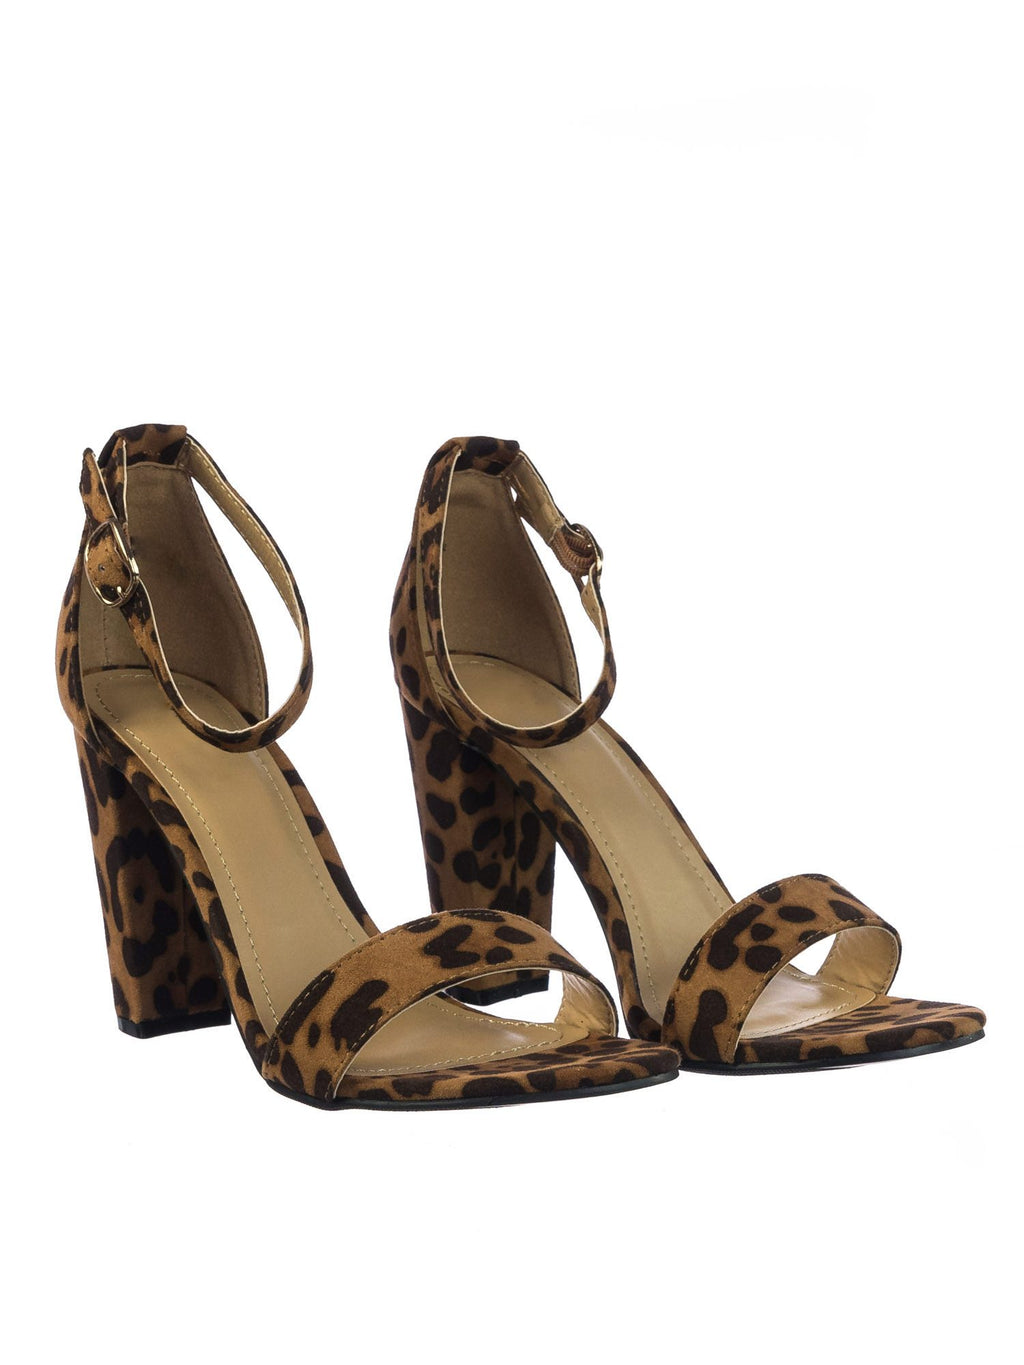 4a051adbccd2 Bamboo Rampage-04s Leopard Open Toe Chunky Heel